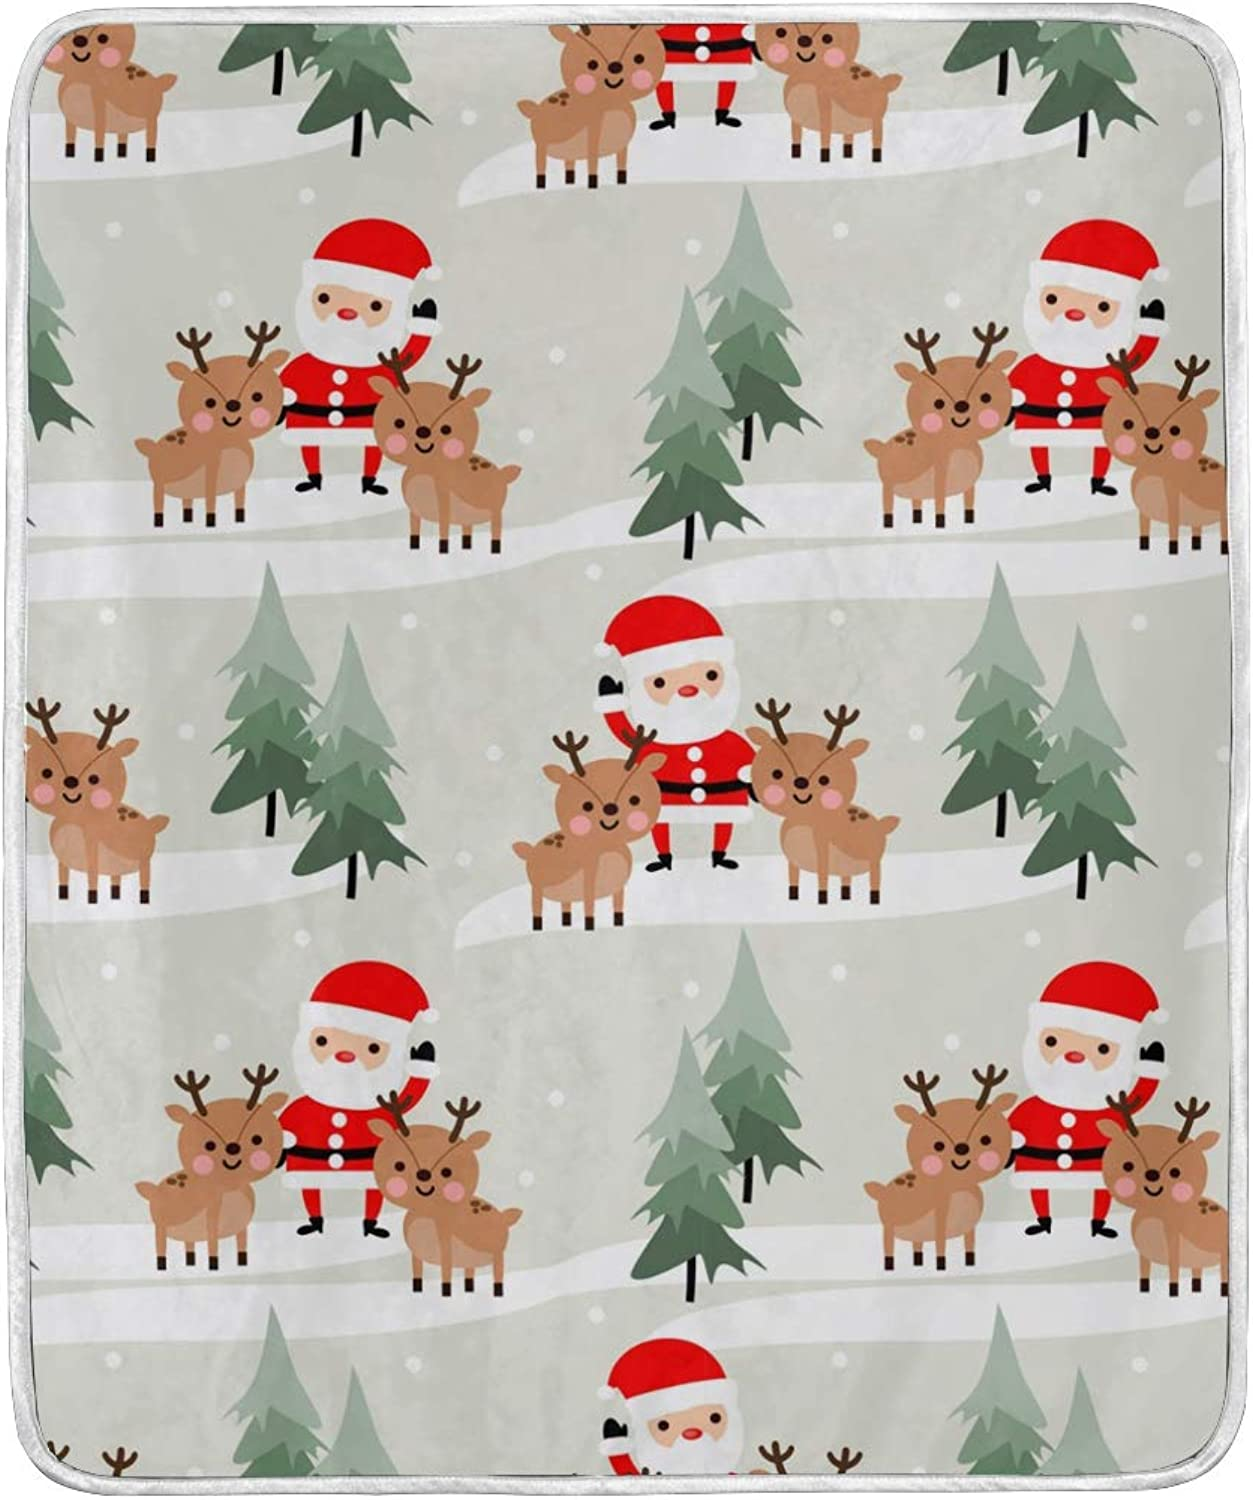 ColourLife Soft Microfiber Bed Blanket Cute Santa Claus and Reindeer Throw Cozy Warm Flannel Fleece Blanket for Kids Women Bed Sofa Couch Beach 4'2  x 5'